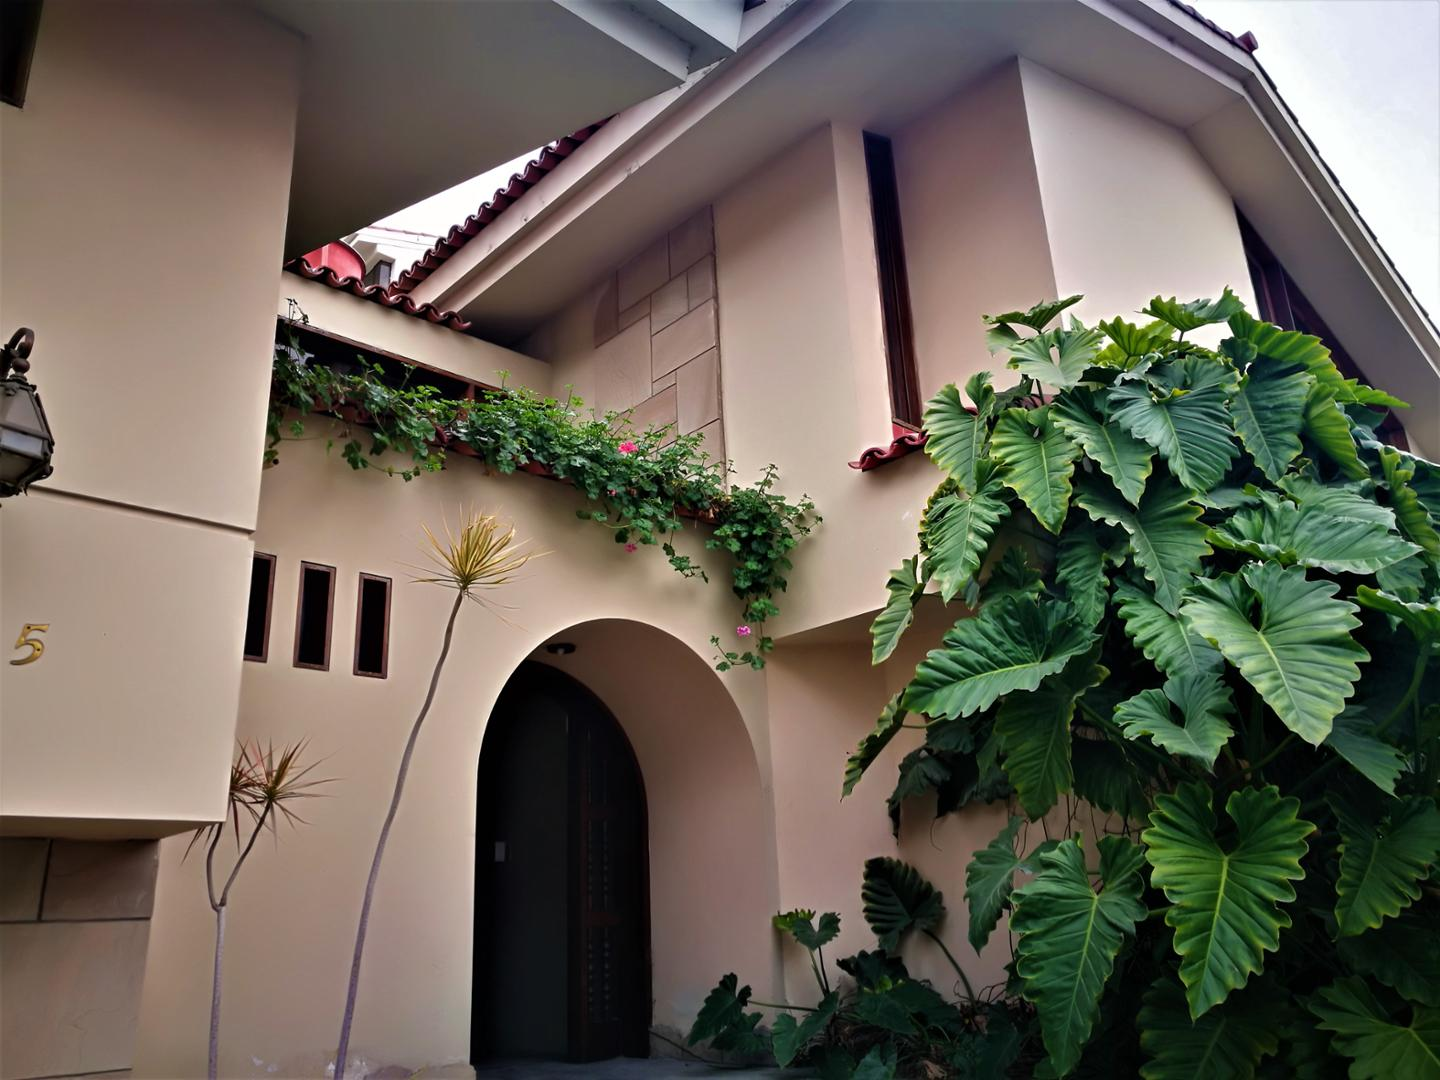 Casa Como Terreno en Venta William Arias Robles, Miraflores, Lima